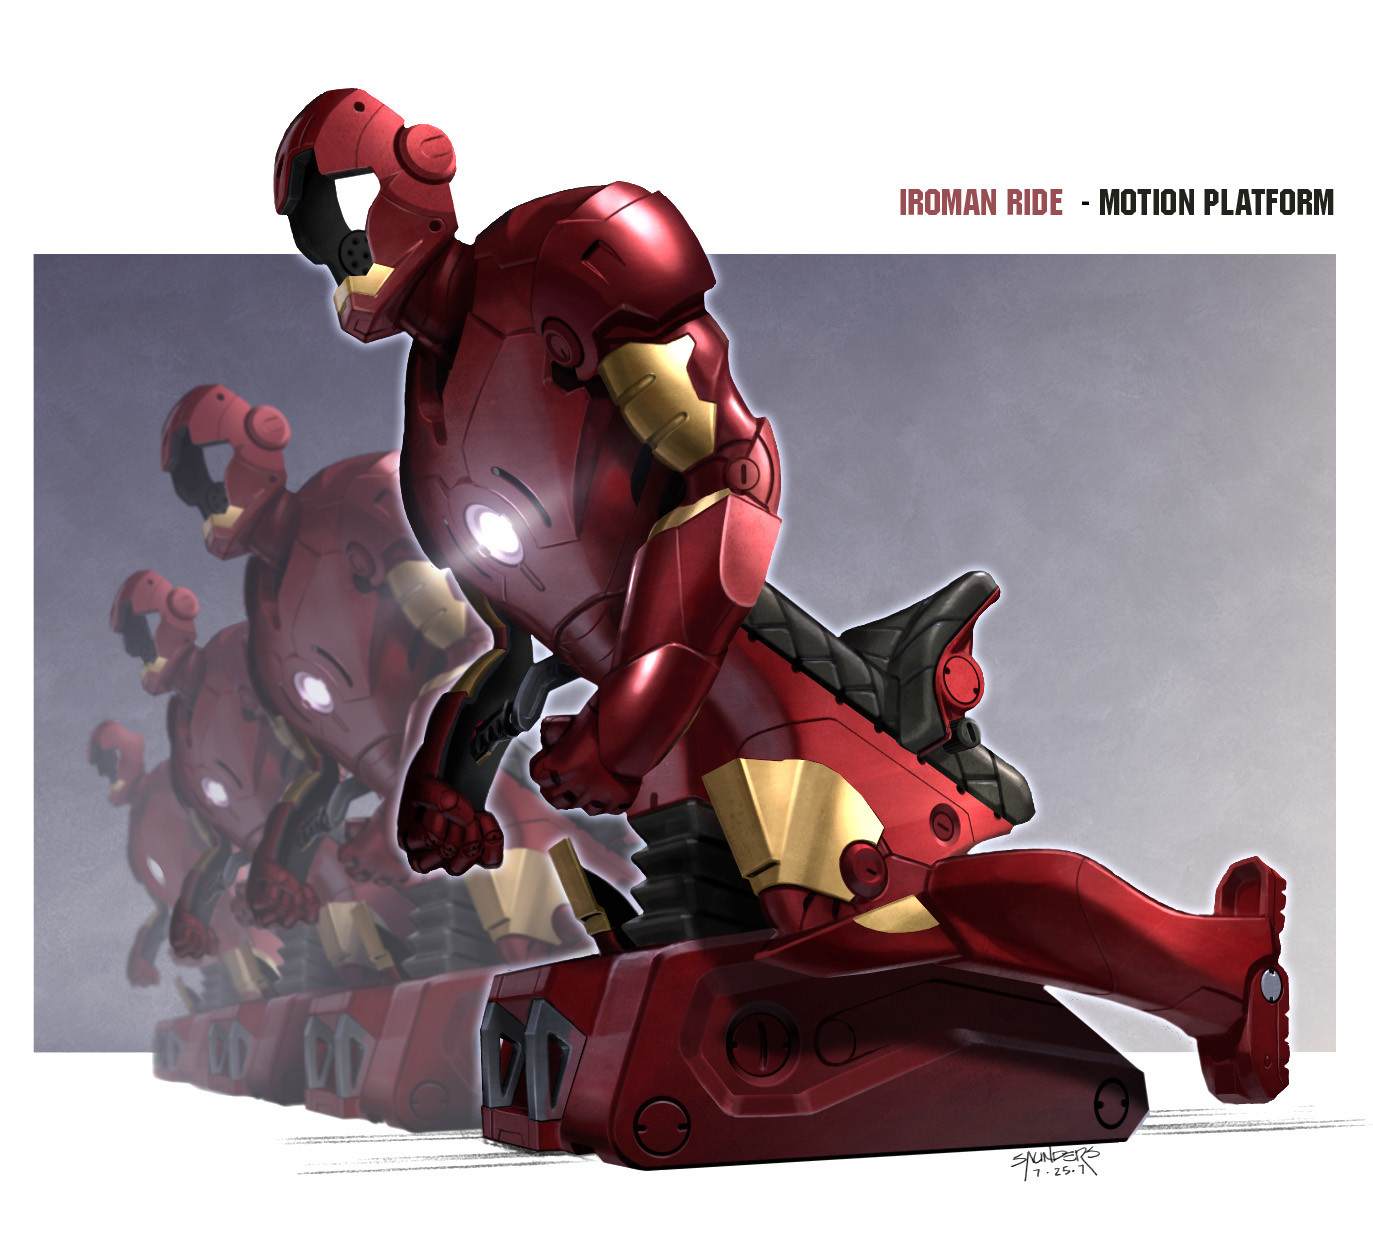 Design for the motion platform for the networked simulator version of the Iron Man ride. I got to develop and write the story treatment and pitch document for this ride proposal as well.